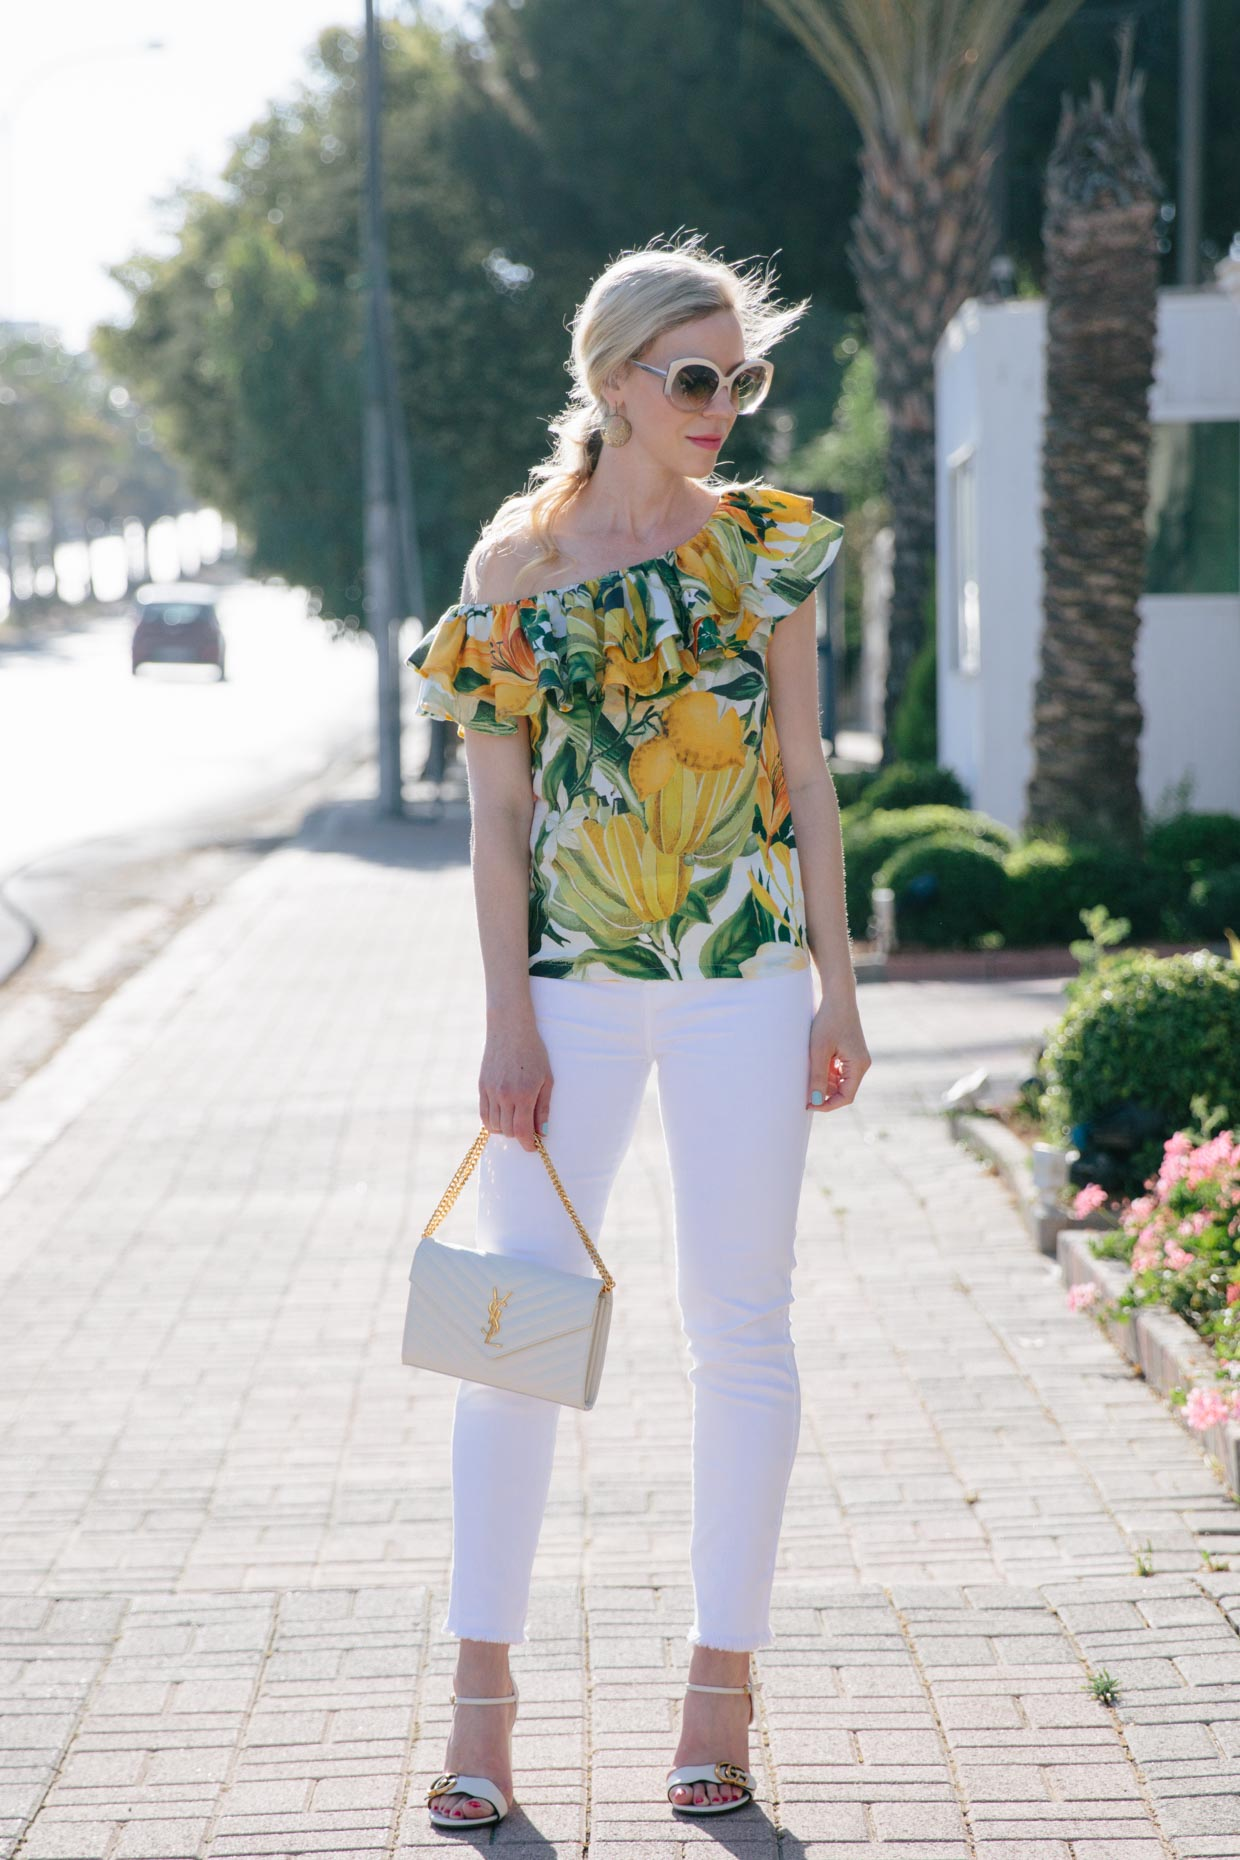 Drawn jeans tropical With Shoulder One Jeans White